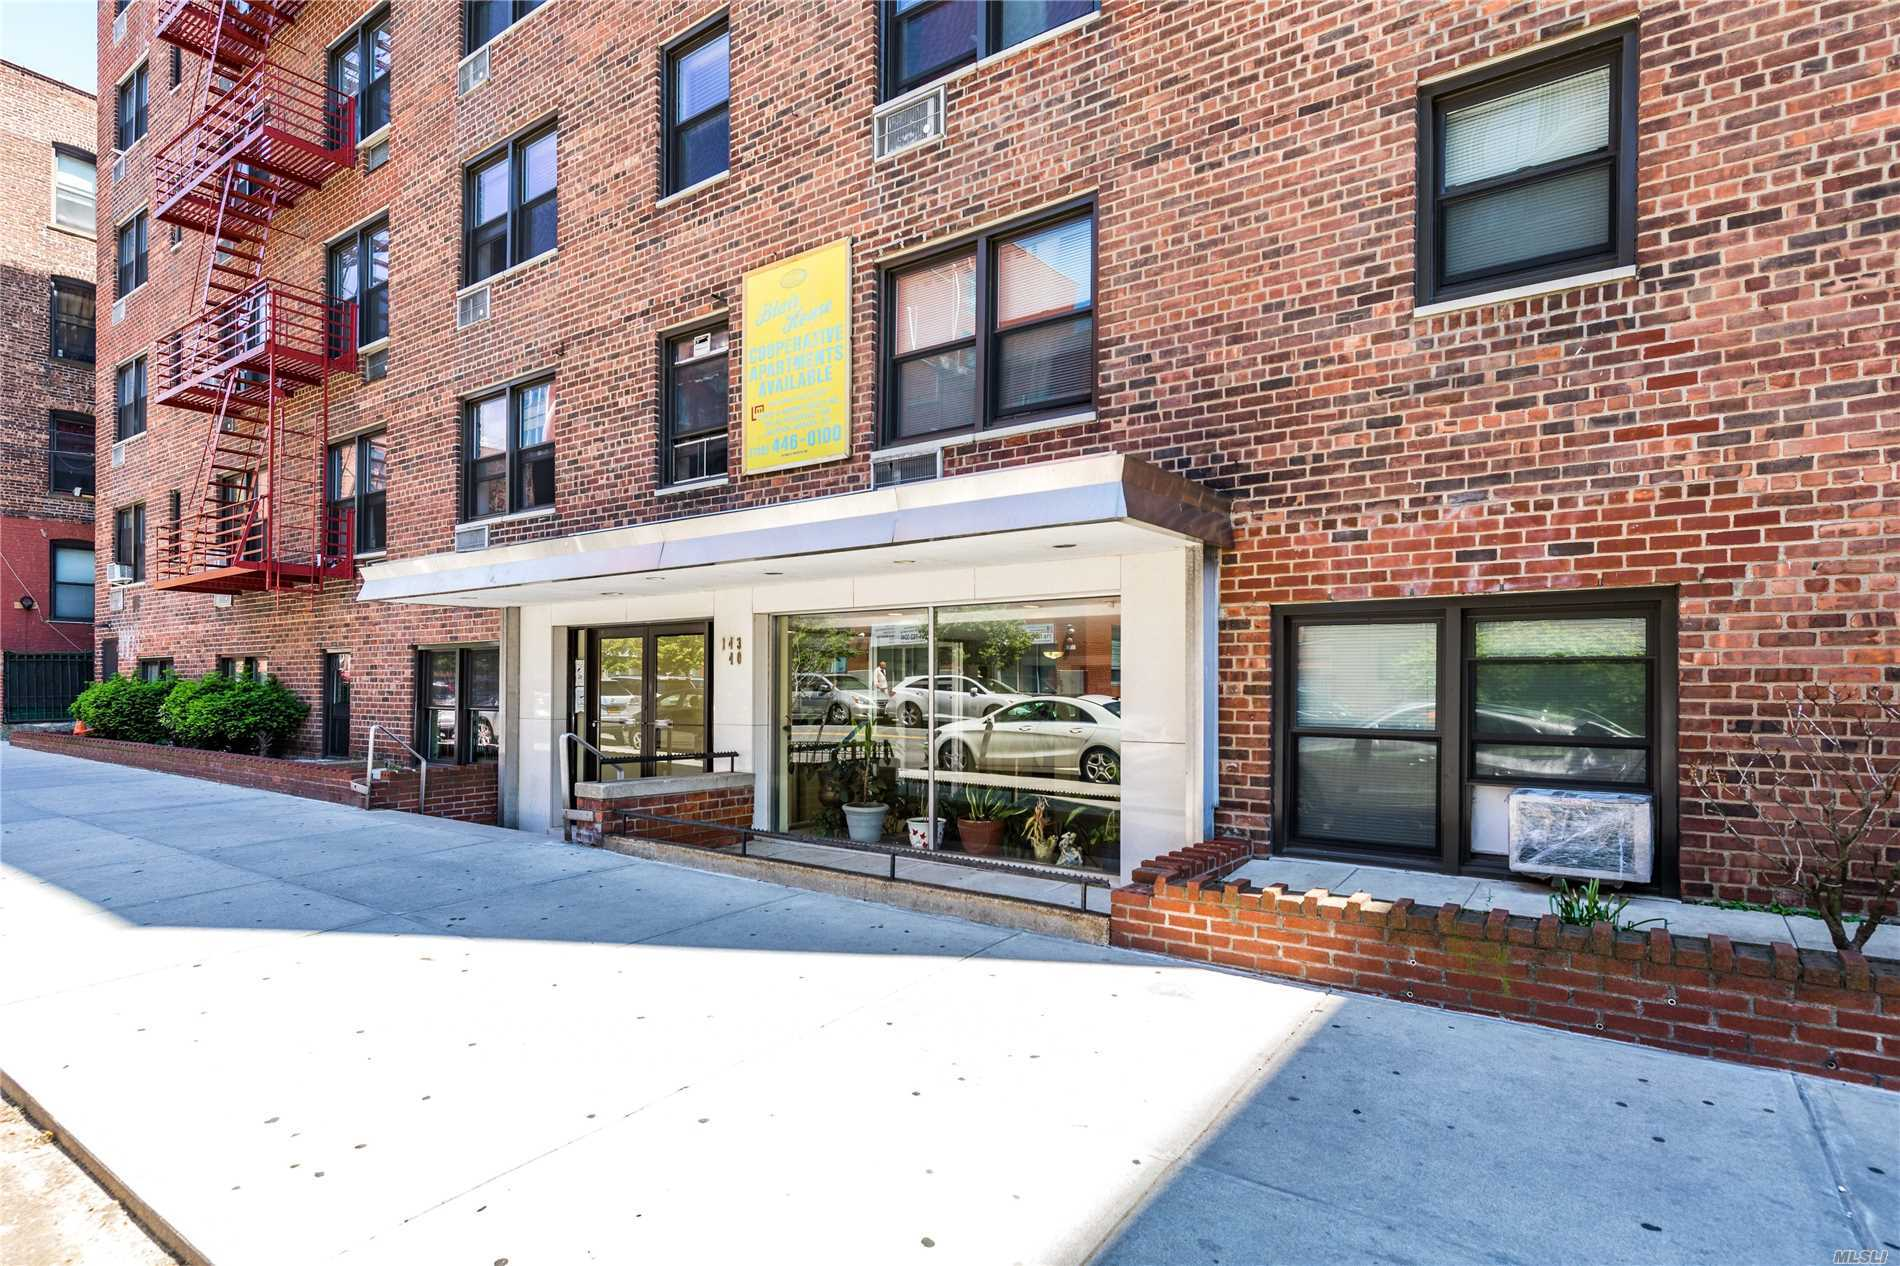 Sale May Be Subject To Term & Conditions Of An Offering Plan. Spacious 2 Br, 2 Ba With A Formal Dining Room Apt On The 3rd Floor. 6-Story, Elevator Bldg With Laundry Facilities. Excellent Location With Acces To All Kind Of Transportation, Public, Private, Highways, Lirr.